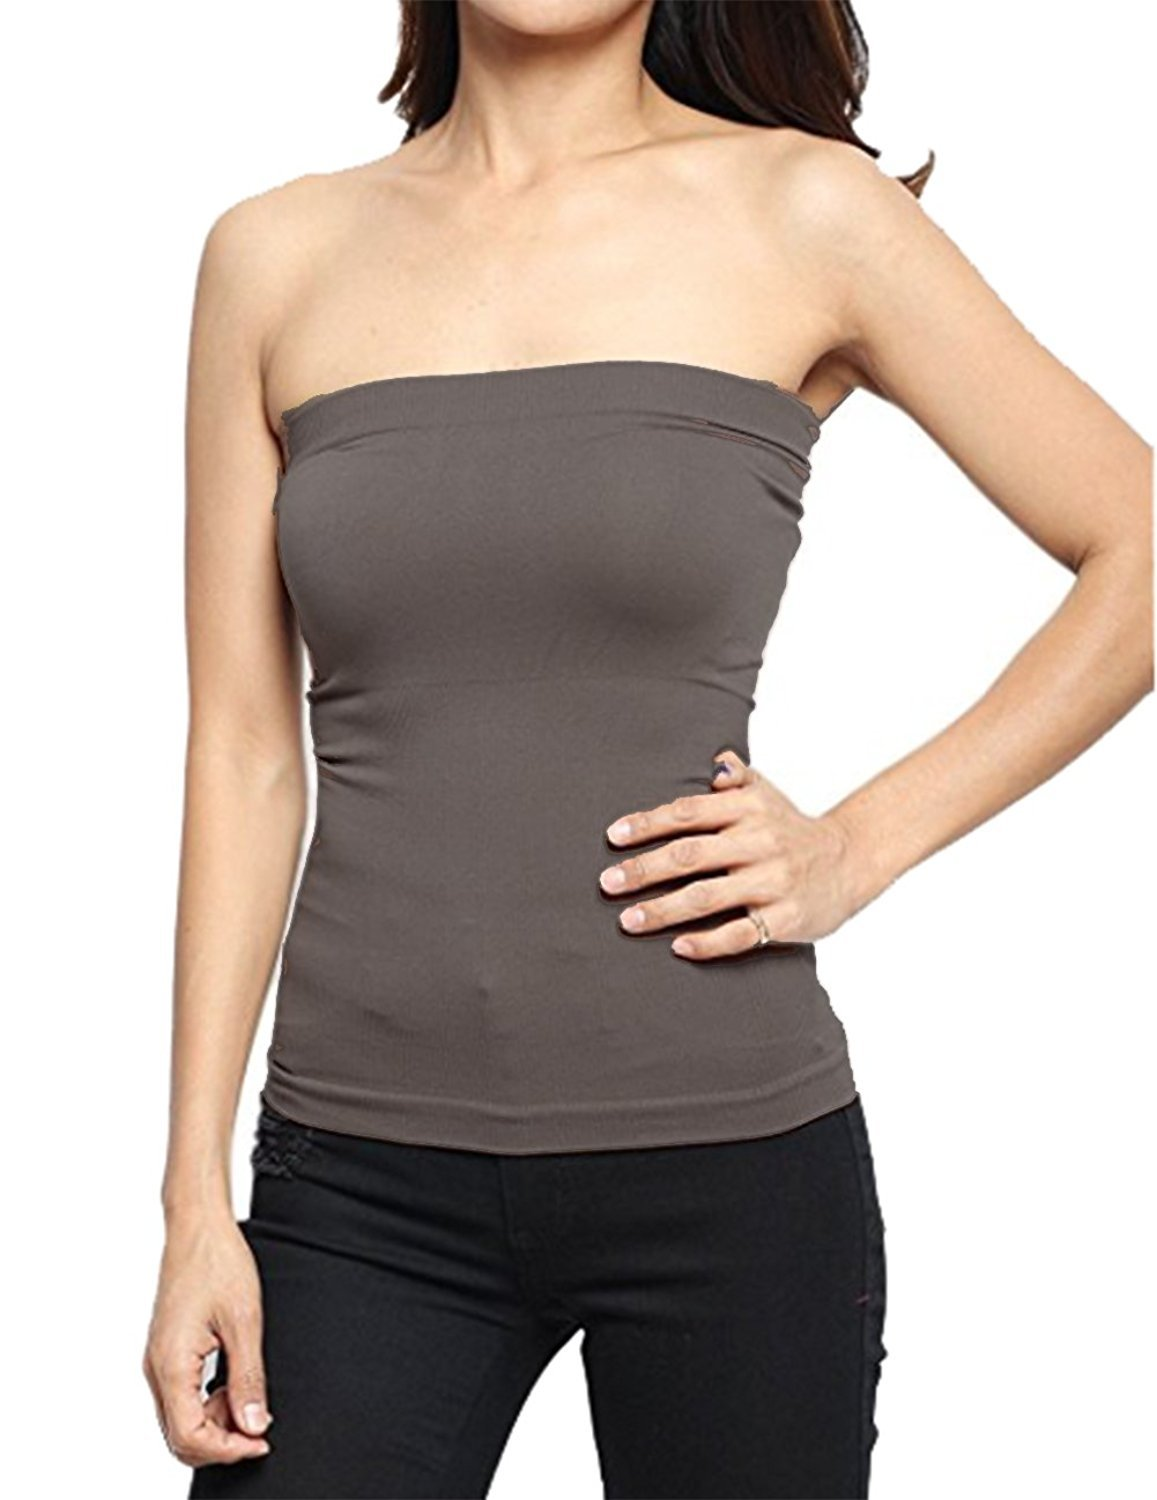 af2b0d51ef Hollywood Star Fashion Women s Plain Stretch Seamless Strapless Layer Tube  Top